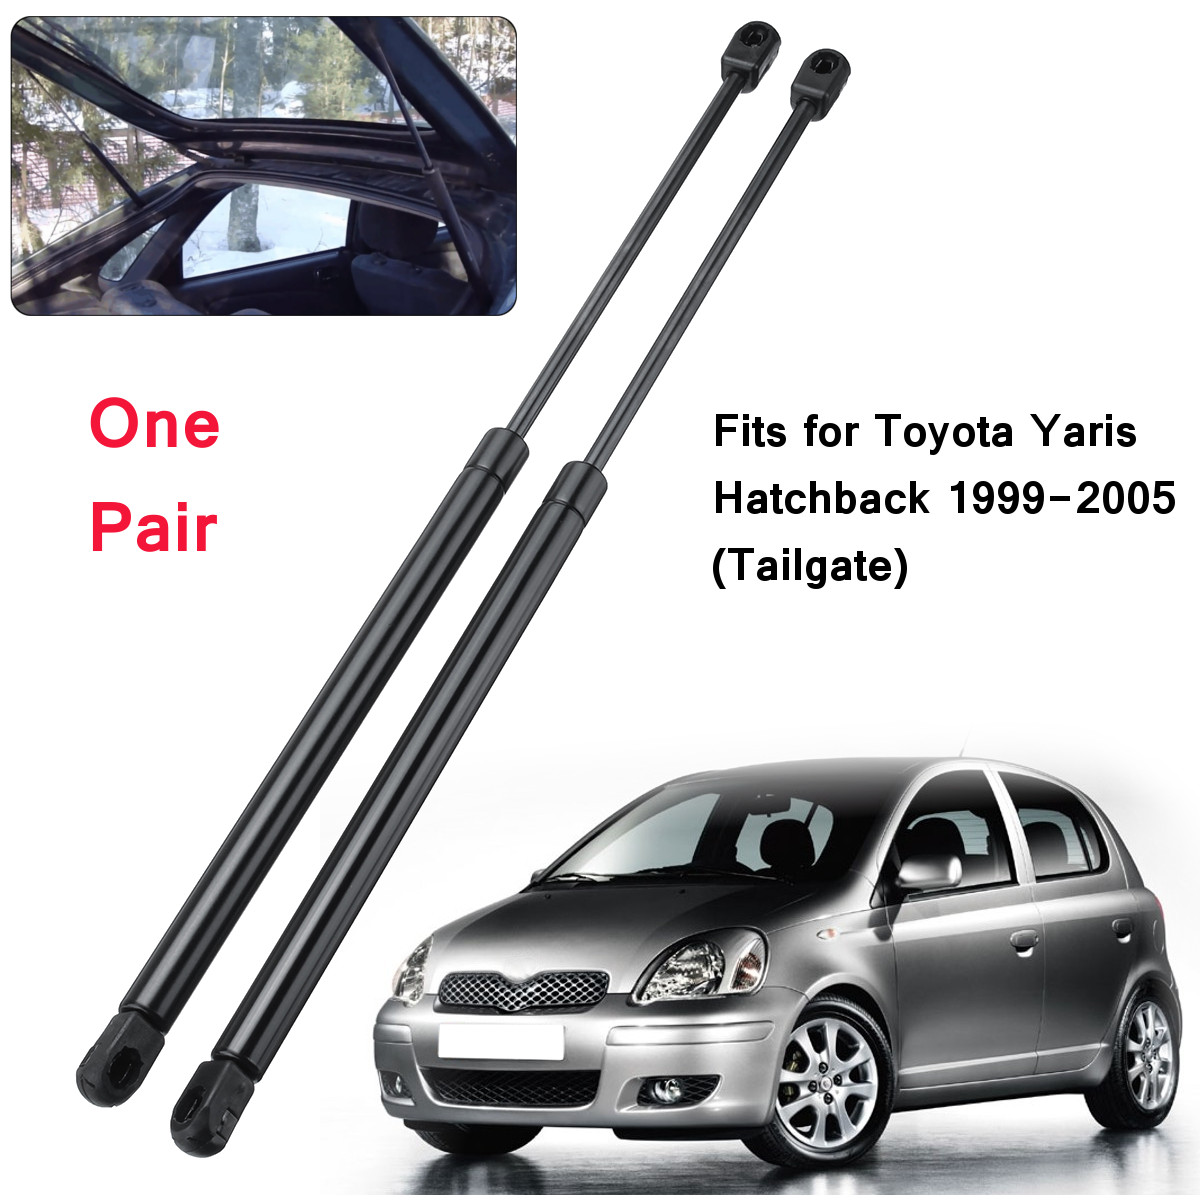 2pcs Trunk Rear Tailgate Boot Gas Struts Lift Support 6895009110 For Toyota Yaris Hatchback 1999 2000 2001 2002 2003 2004 2005